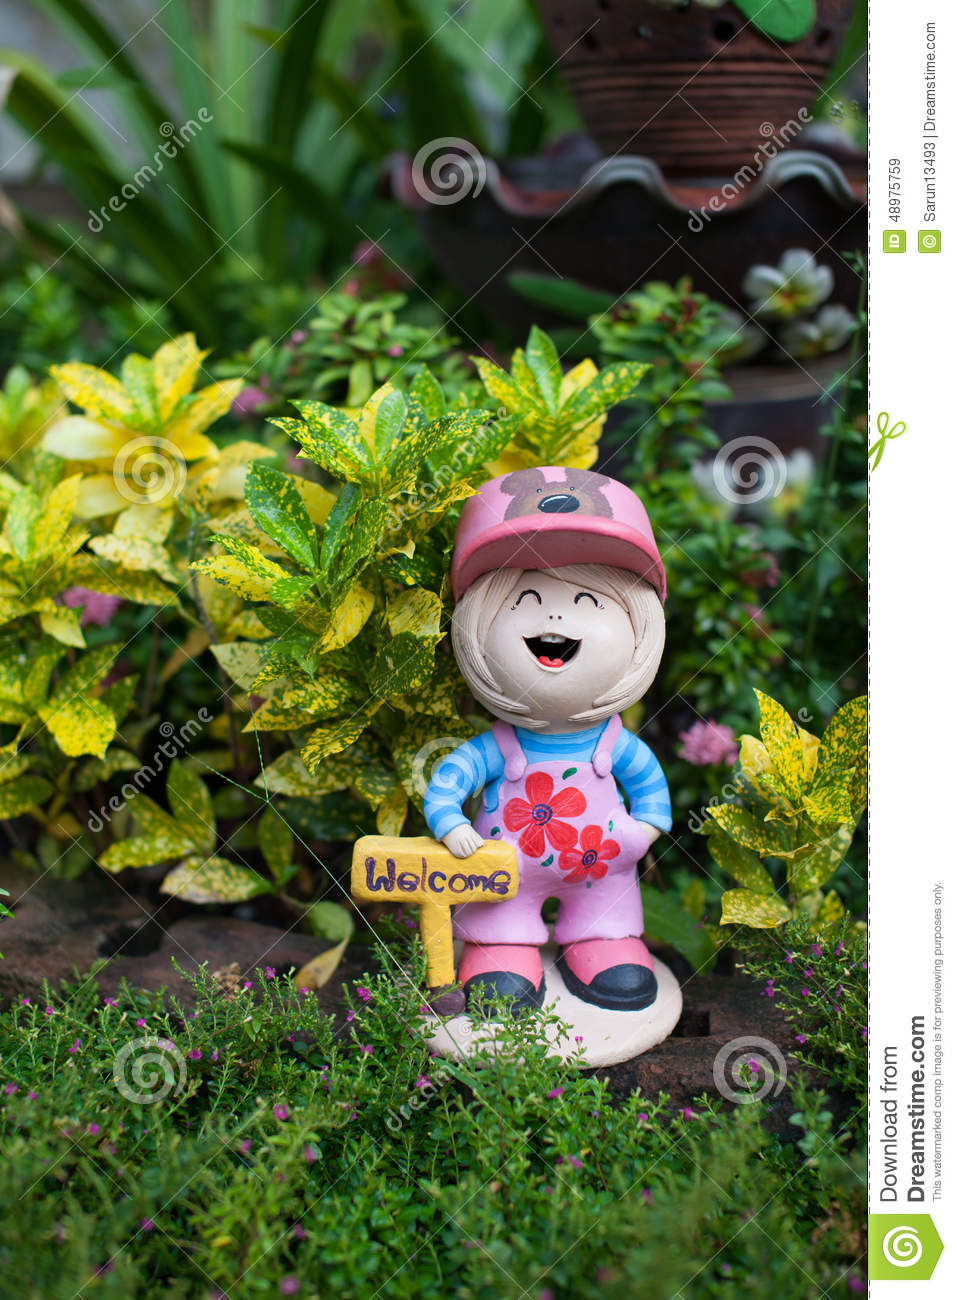 download welcome girl doll in the garden stock illustration illustration of decorate girl - The Doll In The Garden